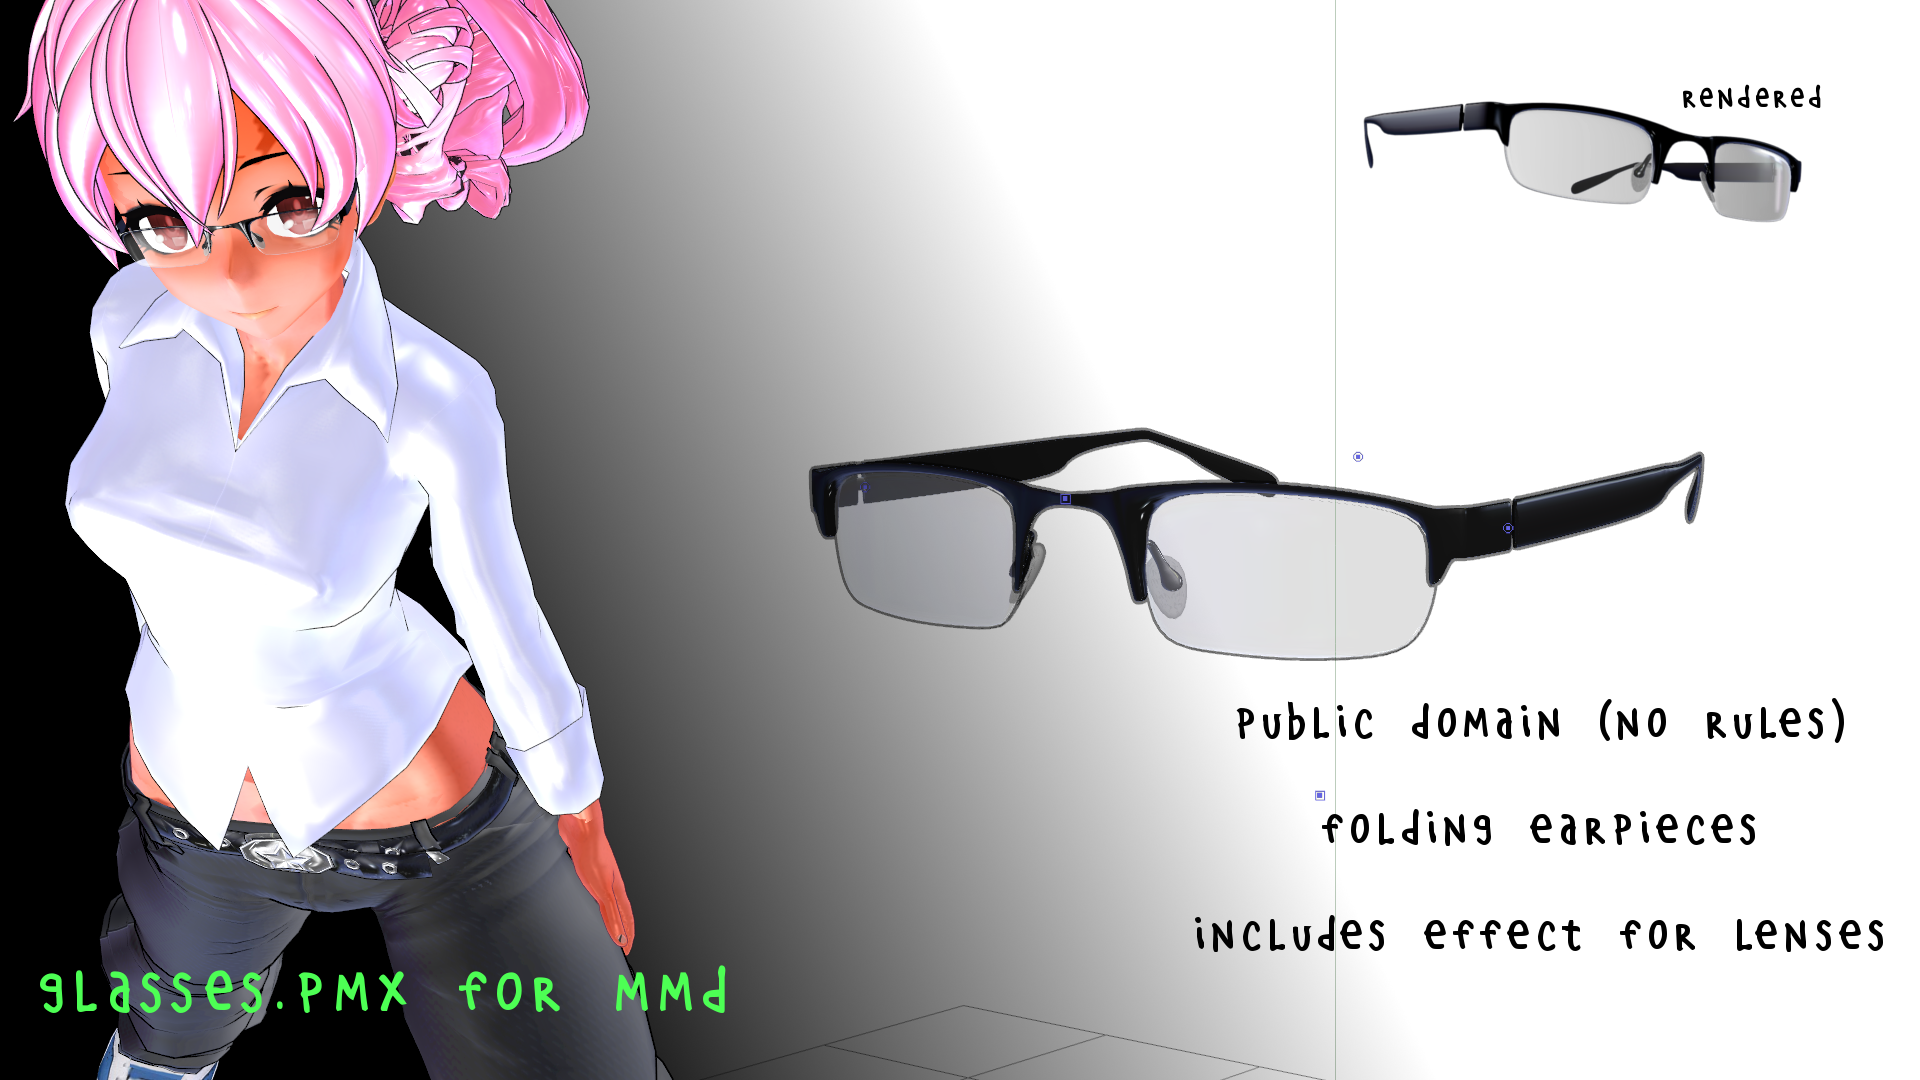 Glasses.pmx and Lens.fx for MMD